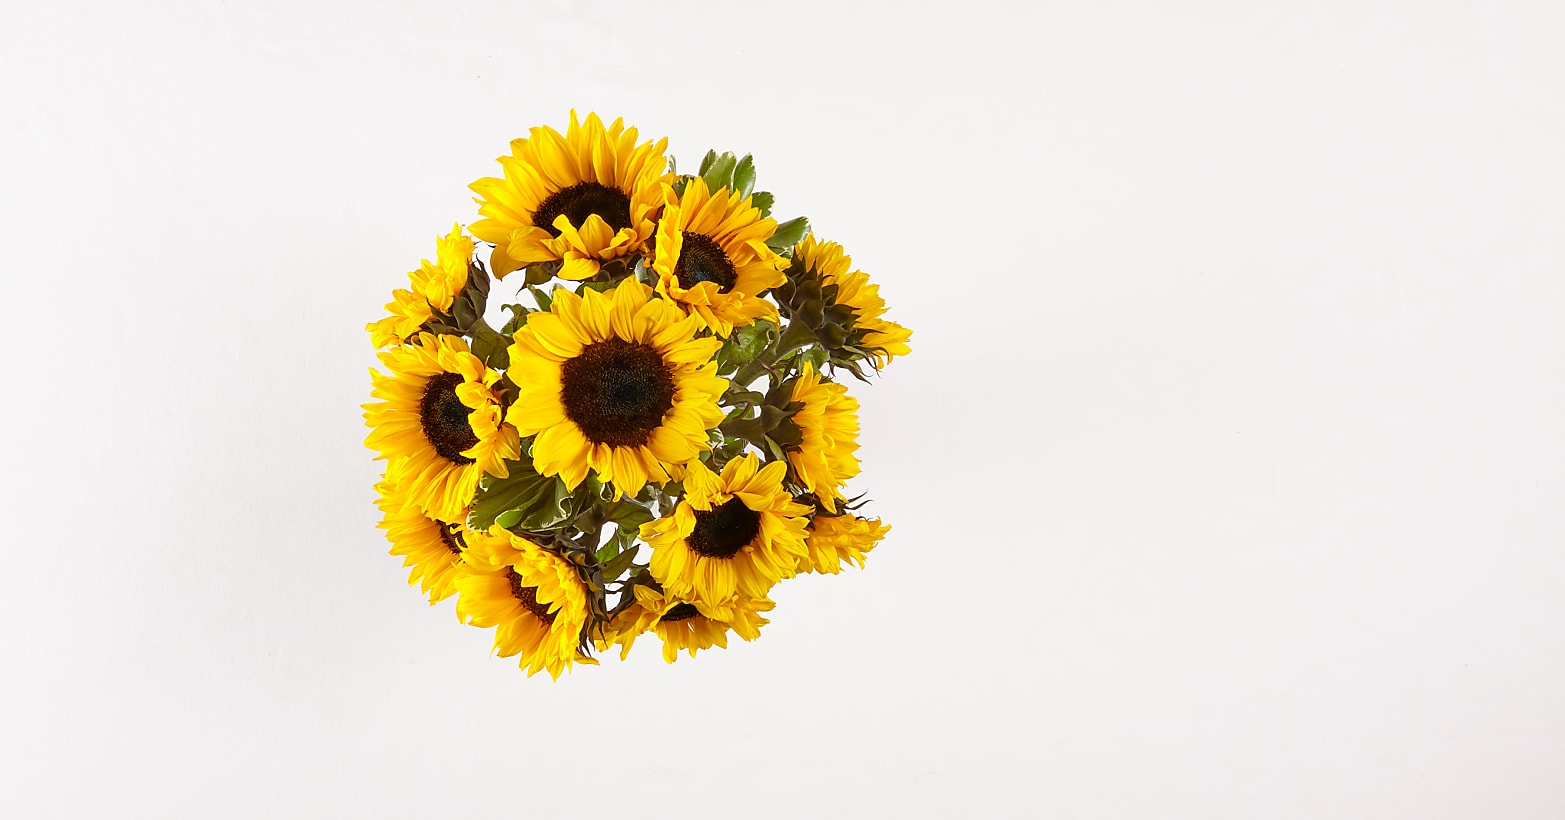 Endless Summer Sunflower Bouquet - Image 3 Of 4